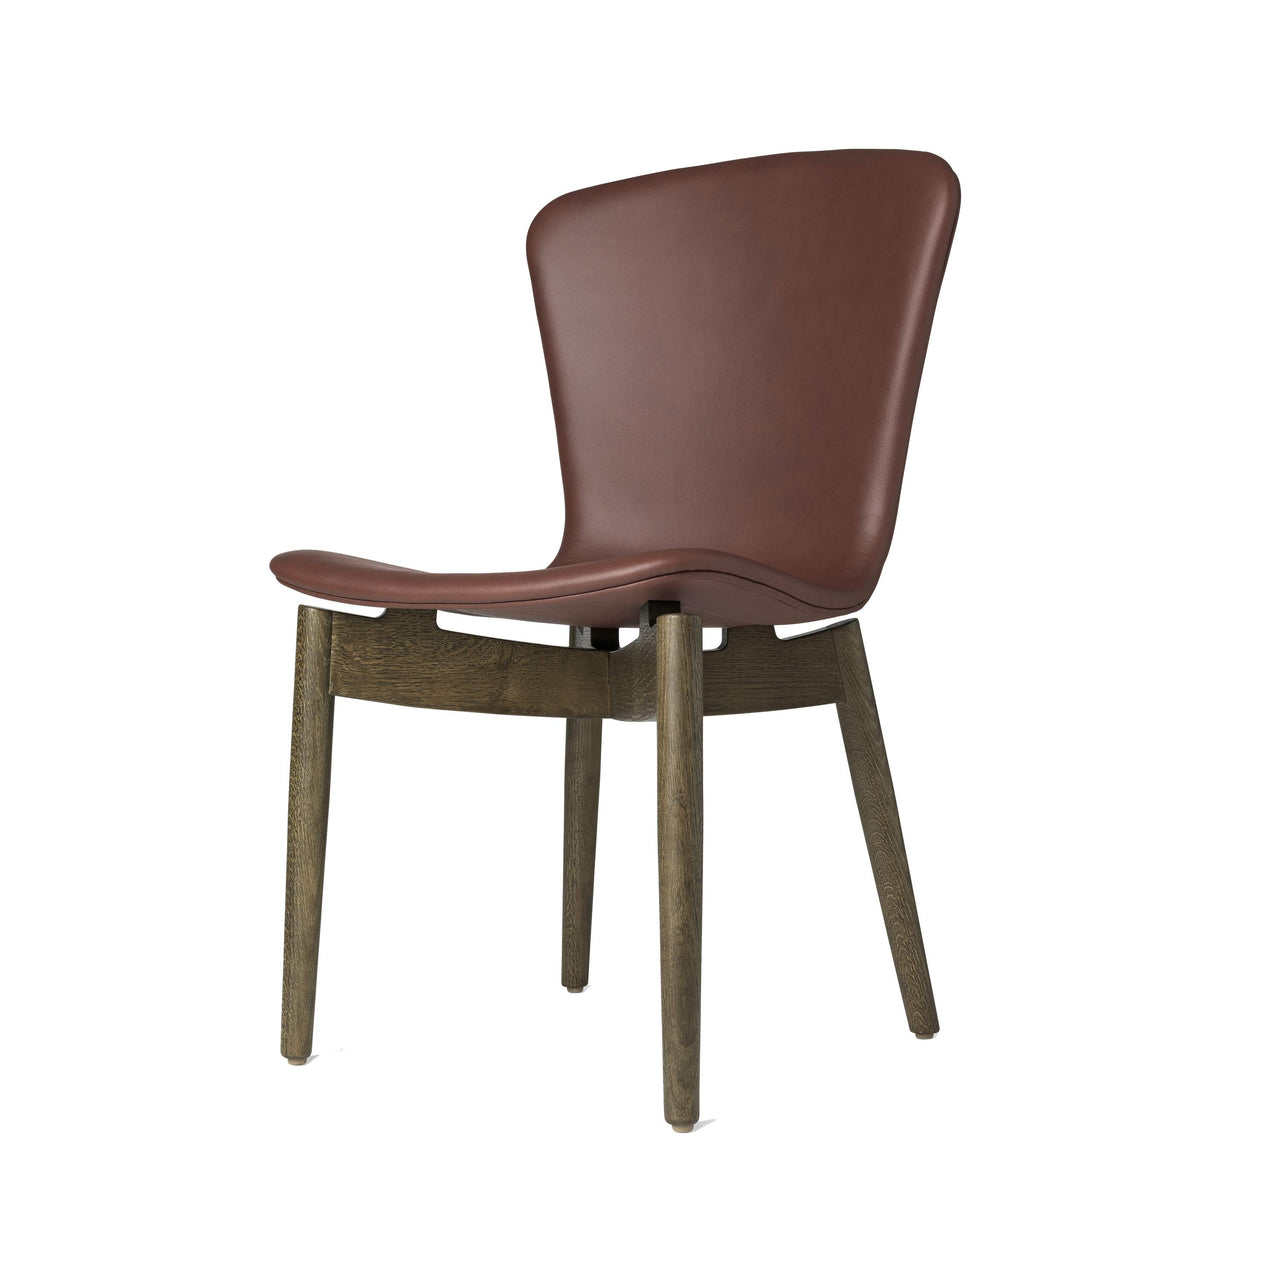 Shell Dining Chair: Ultra Cognac Leather + Sirka Grey Oak